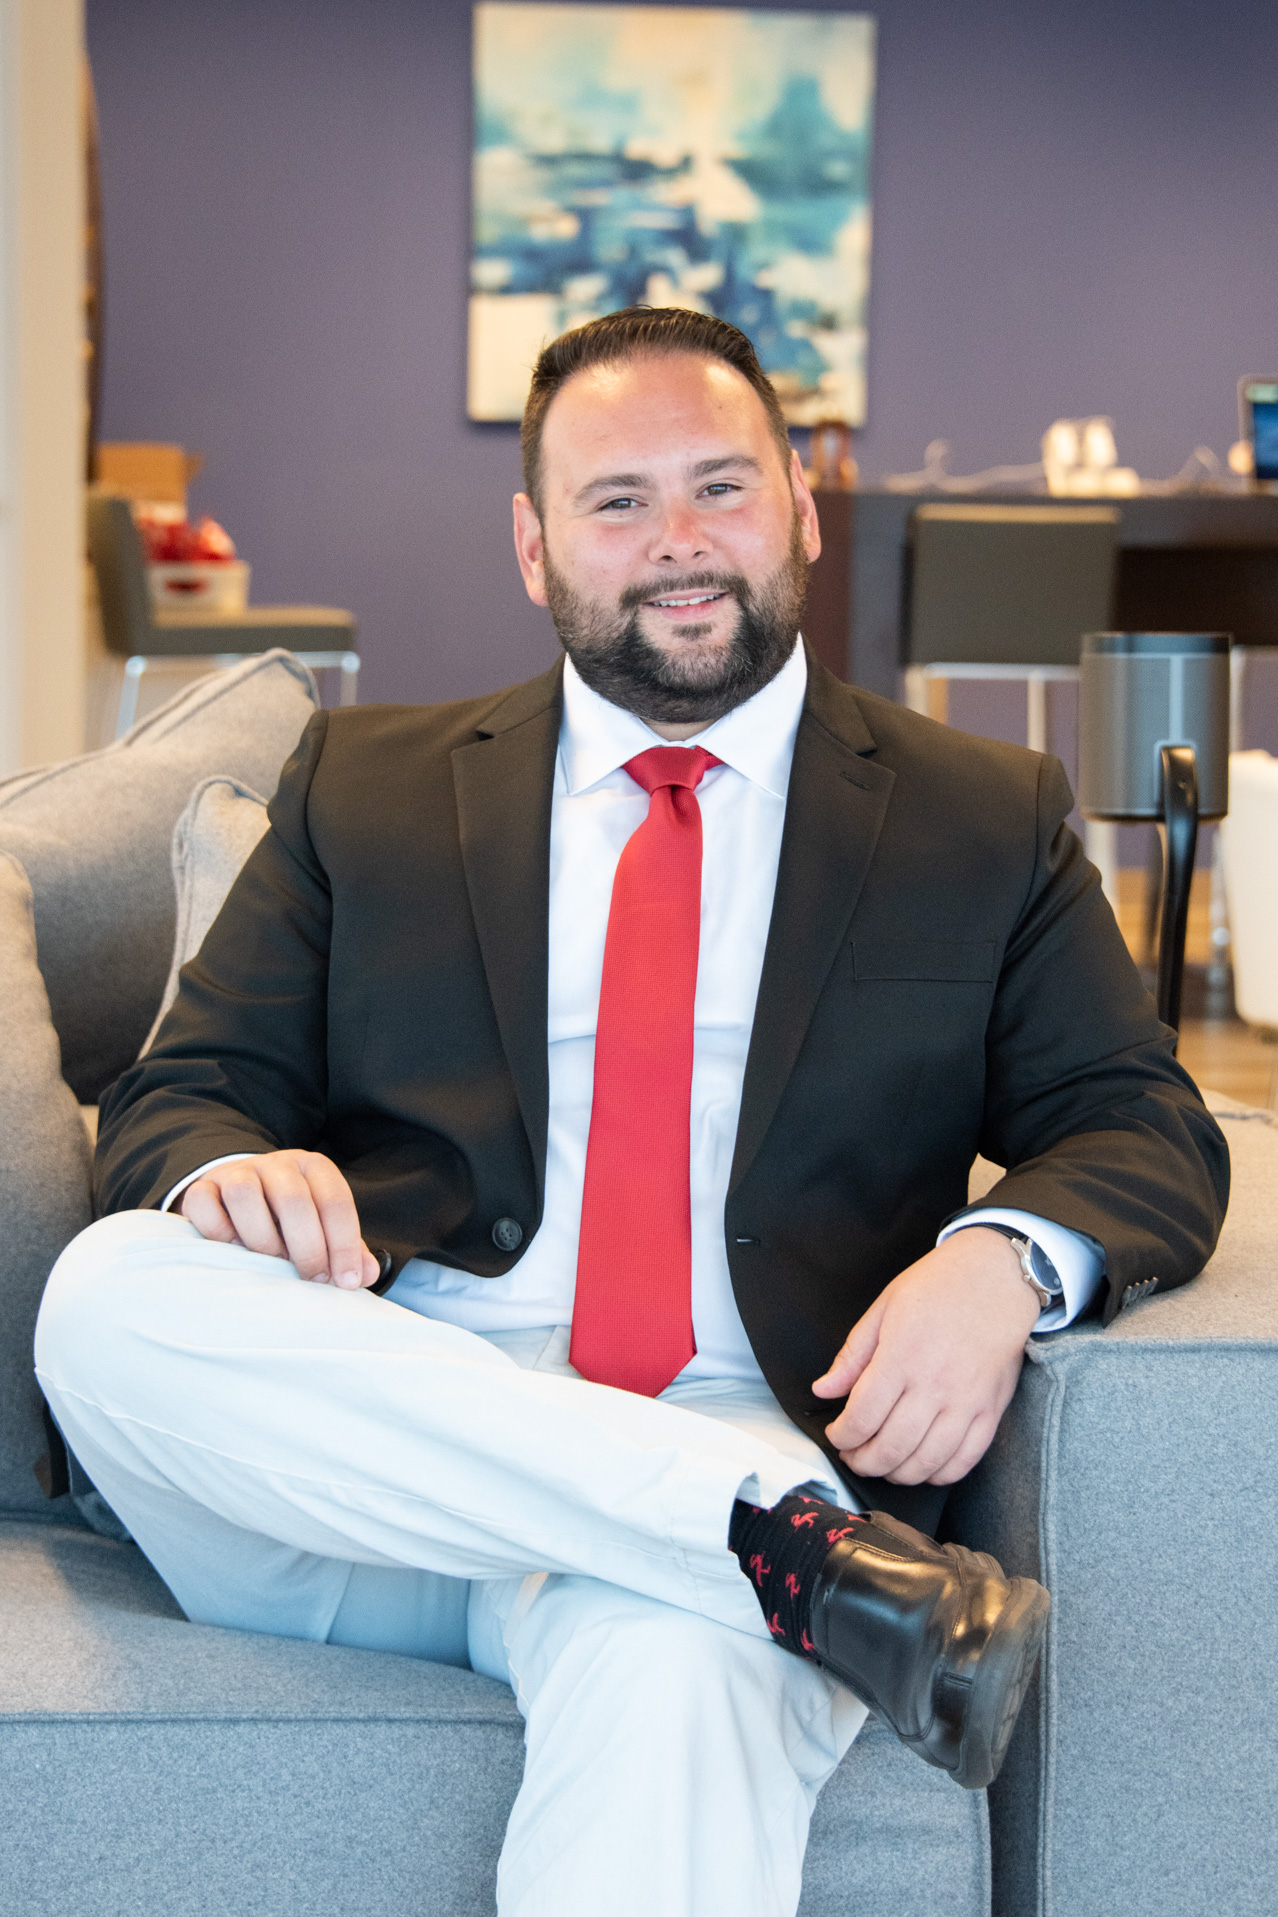 creative lifestyle professional headshot of a real estate agent, photographed by jamie bannon photography.